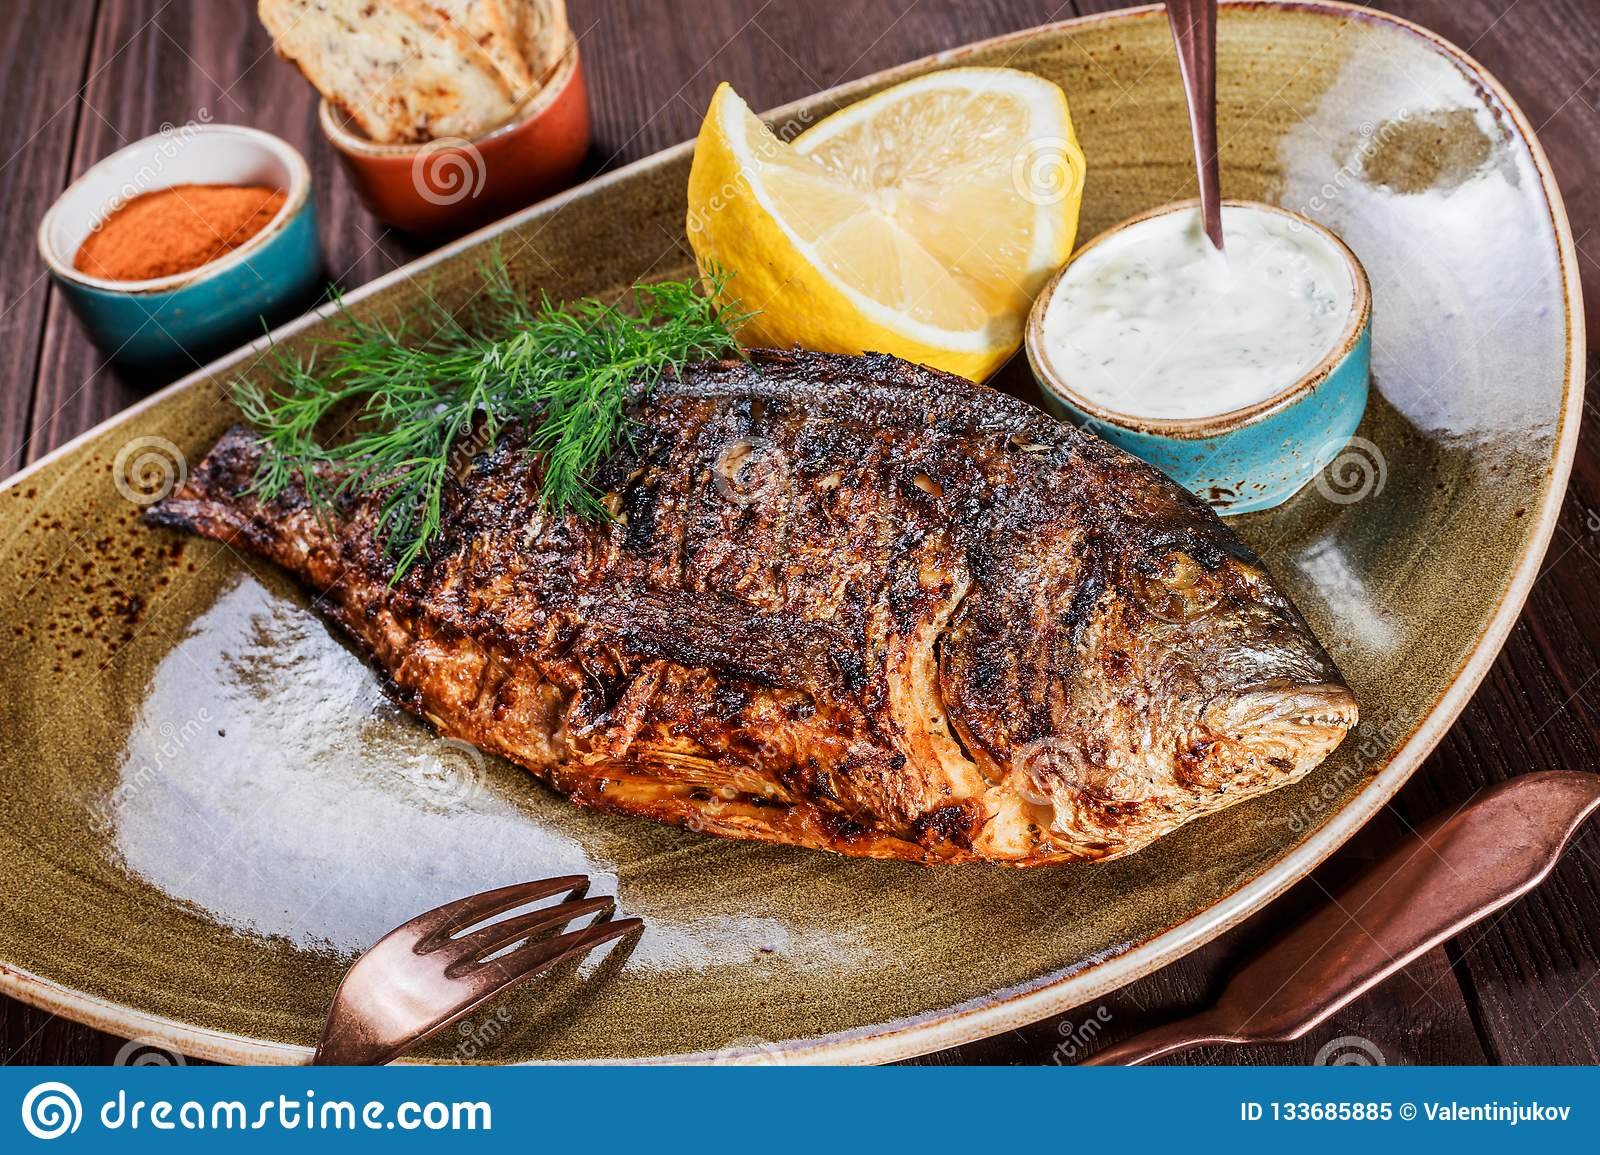 Grilled dorado fish with lemon and greens on plate on wooden background.